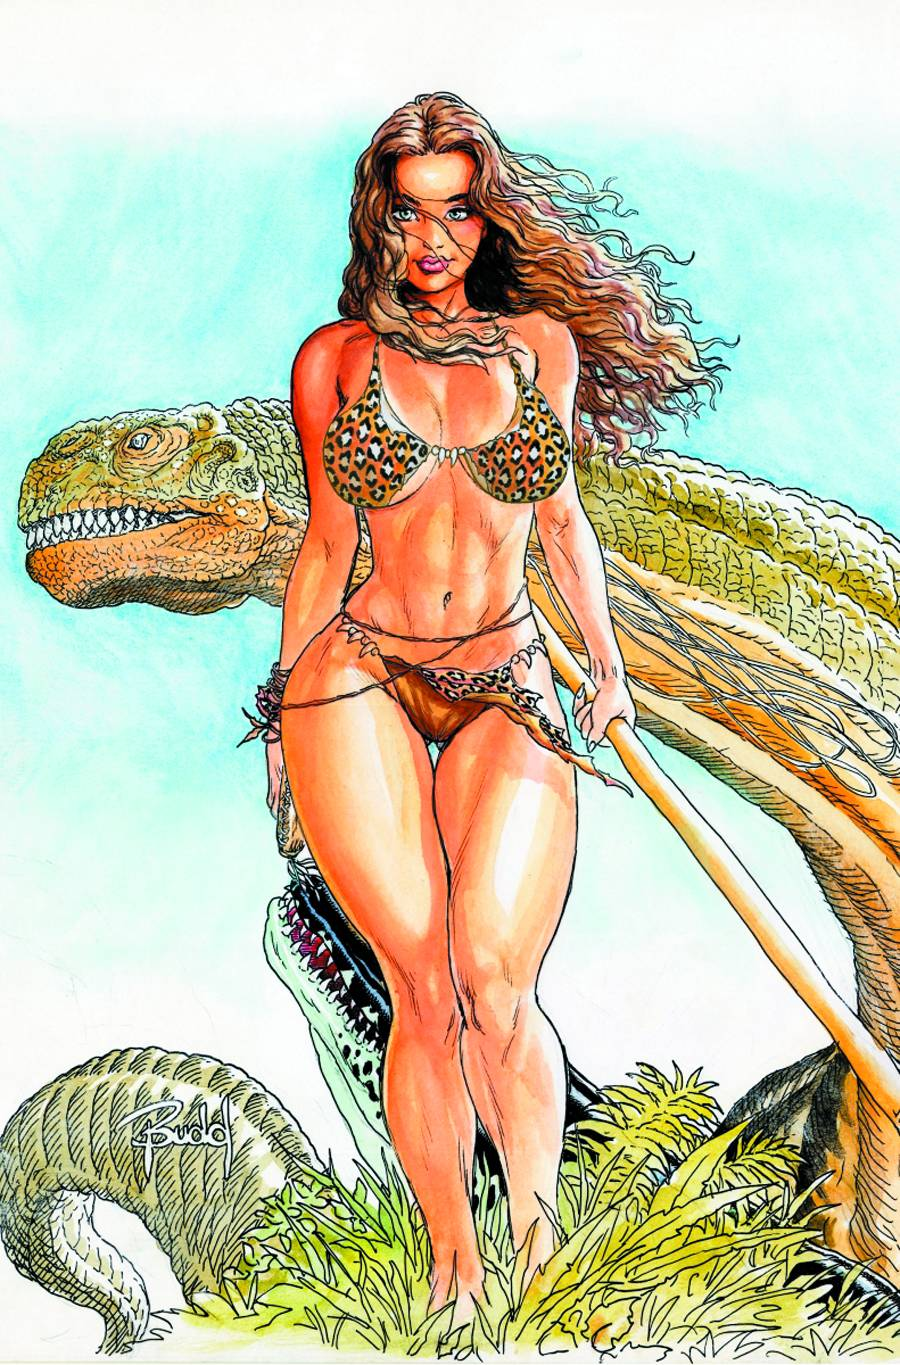 Dinosaurs in Sci fi and fantasy art part IV parlor of horror 900x1365